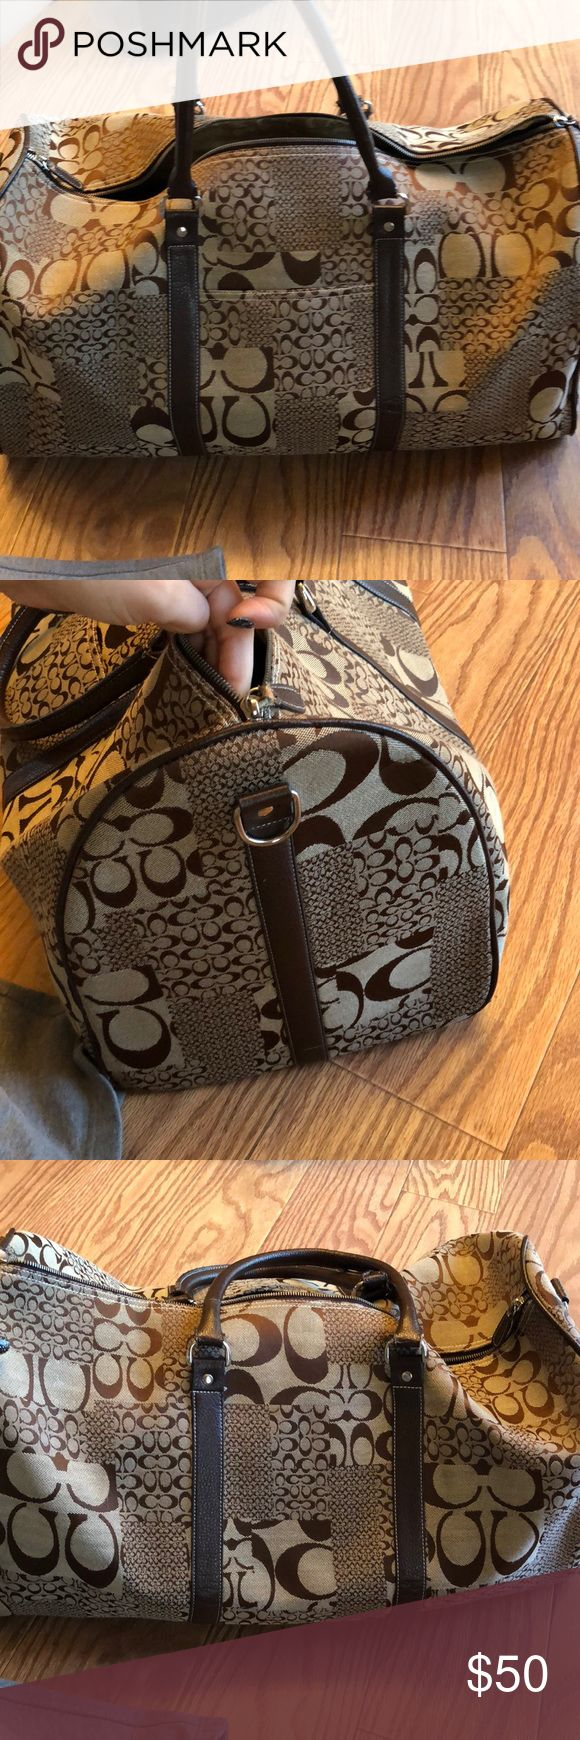 Coach duffle bag! Used Coach duffle bag, but still in great condition. The leather zipper is used greatly, but still works or could even be replaced if wanted to. Also comes with a leather strap to be carried across the body. Coach Bags Travel Bags